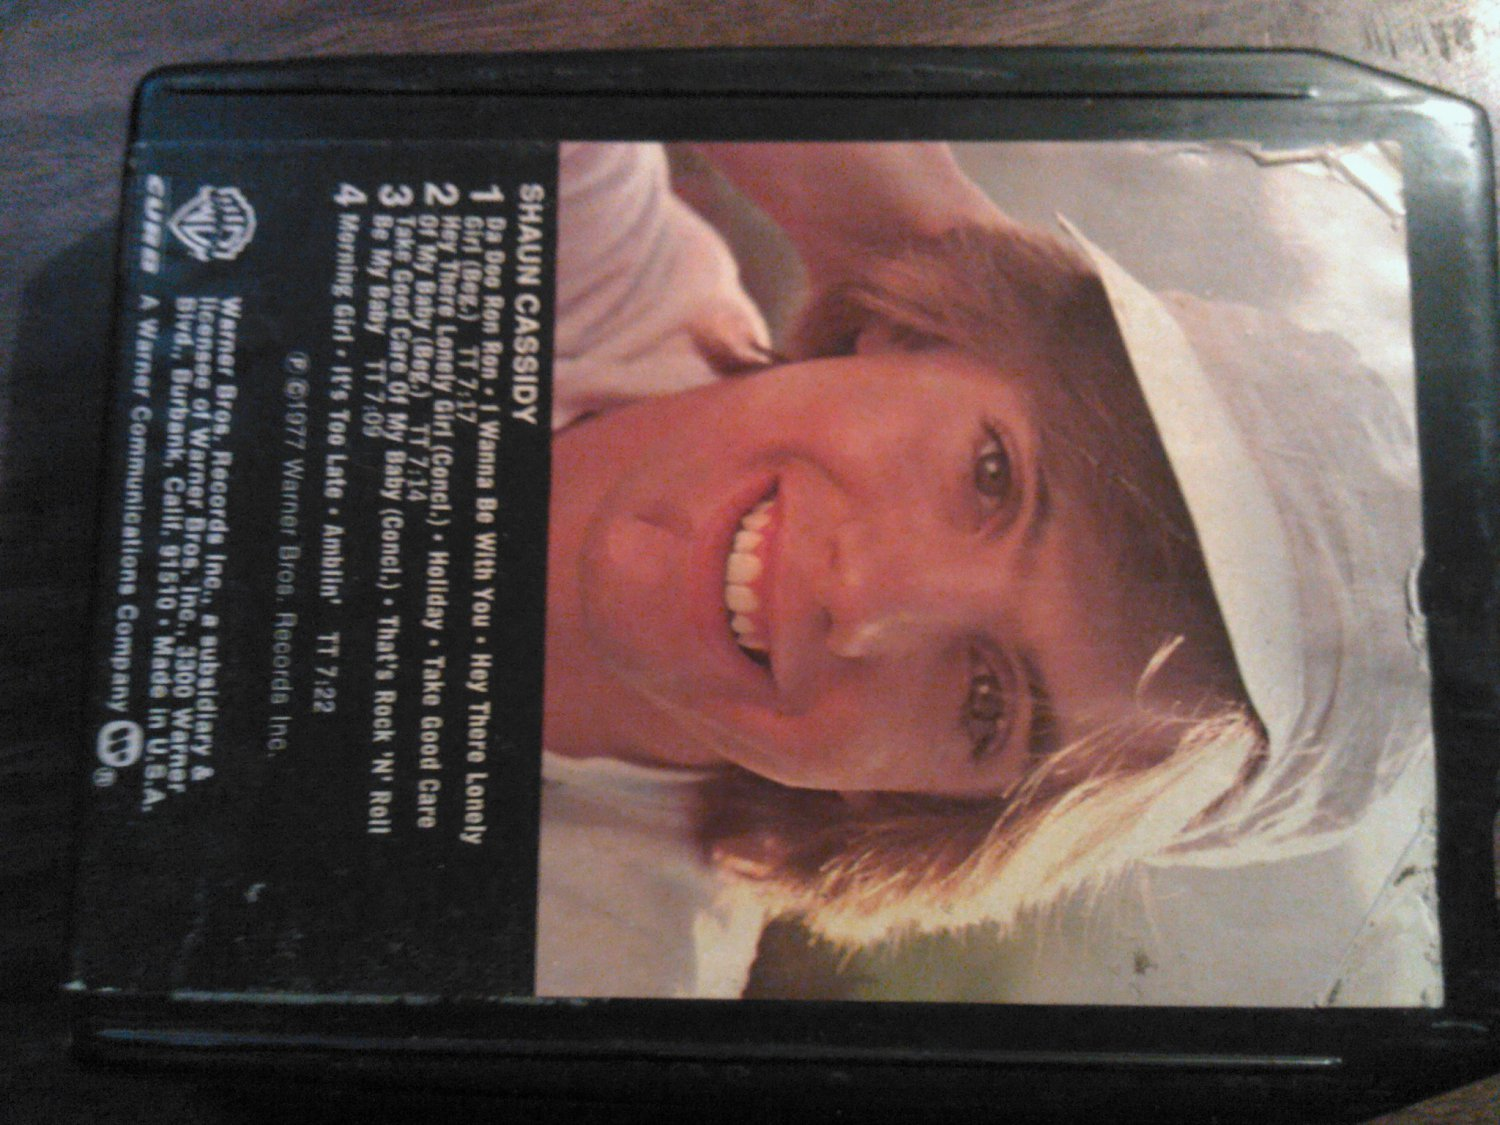 SHAUN CASSIDY 8-TRACK TAPE self titled do ron VINTAGE